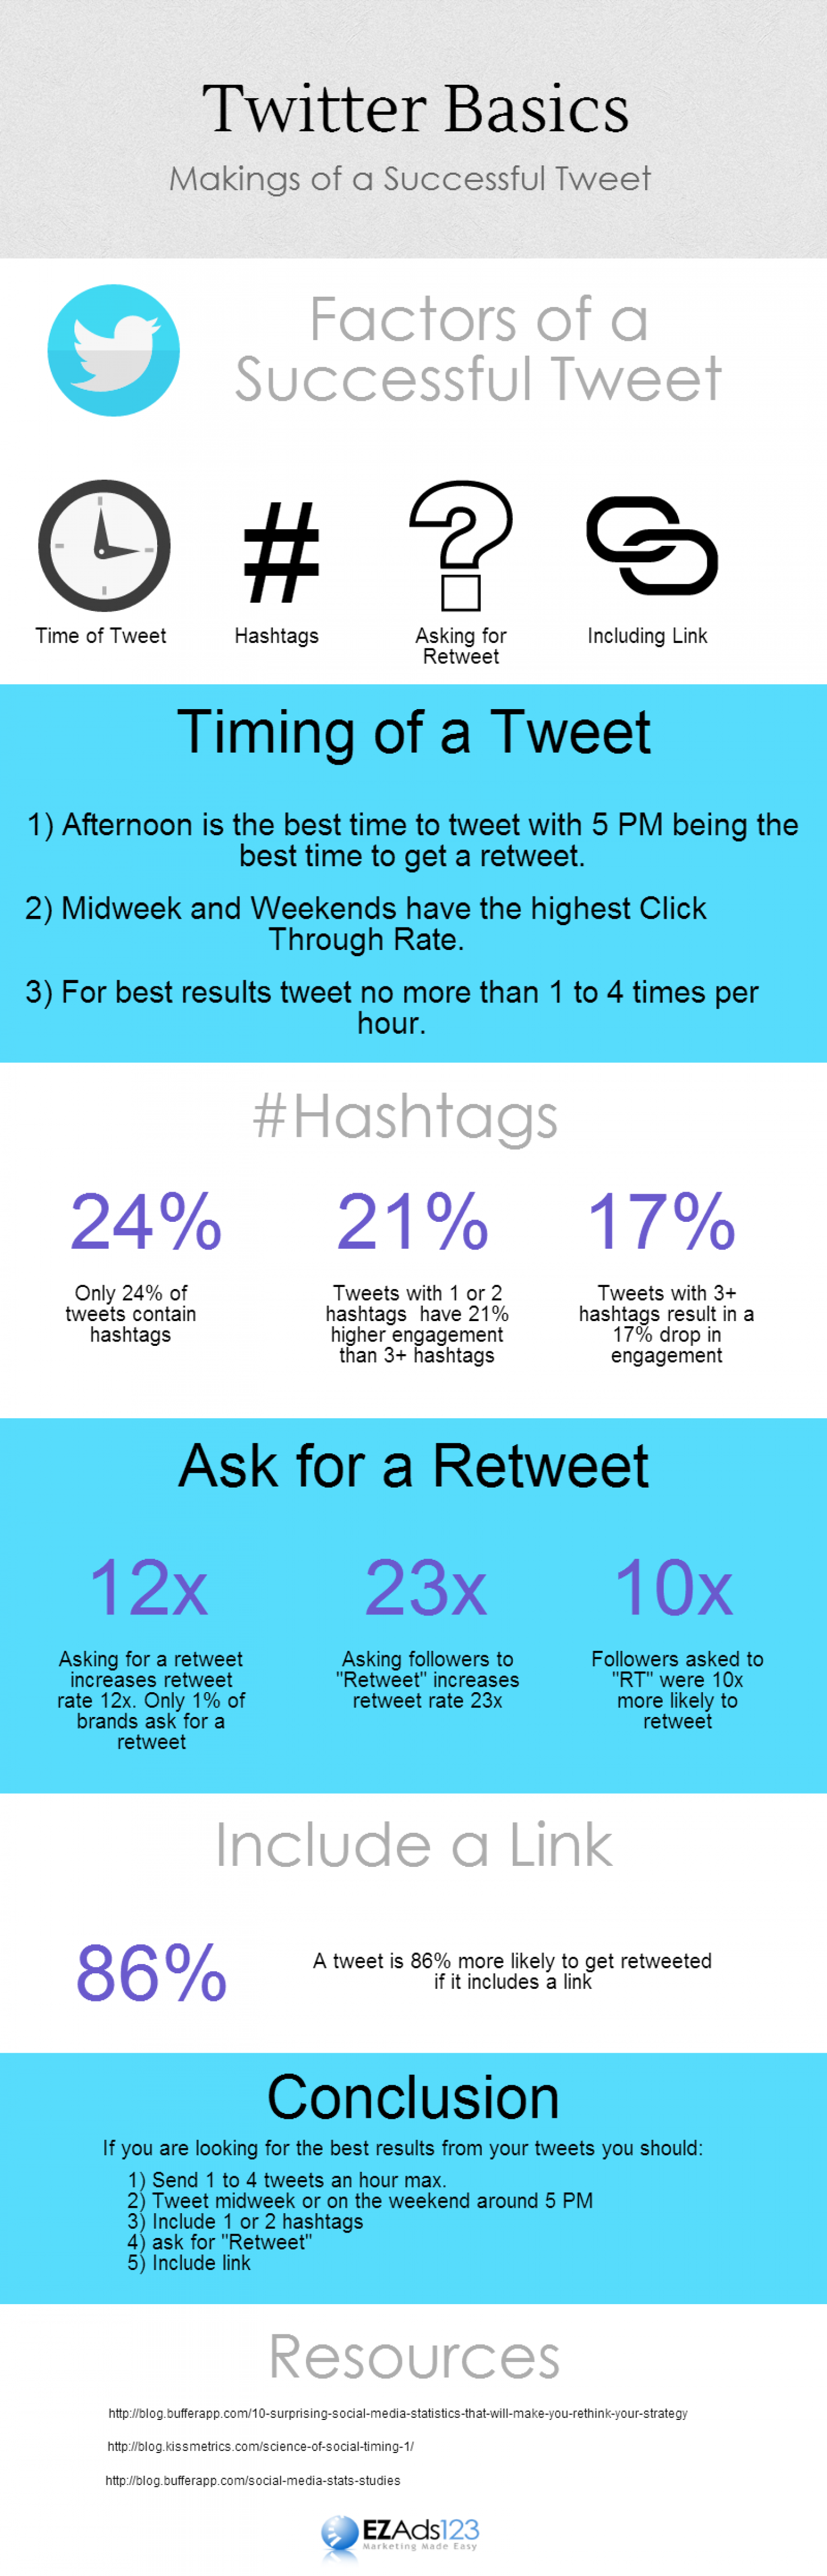 Twitter Basics - Making of a Successful Tweet Infographic